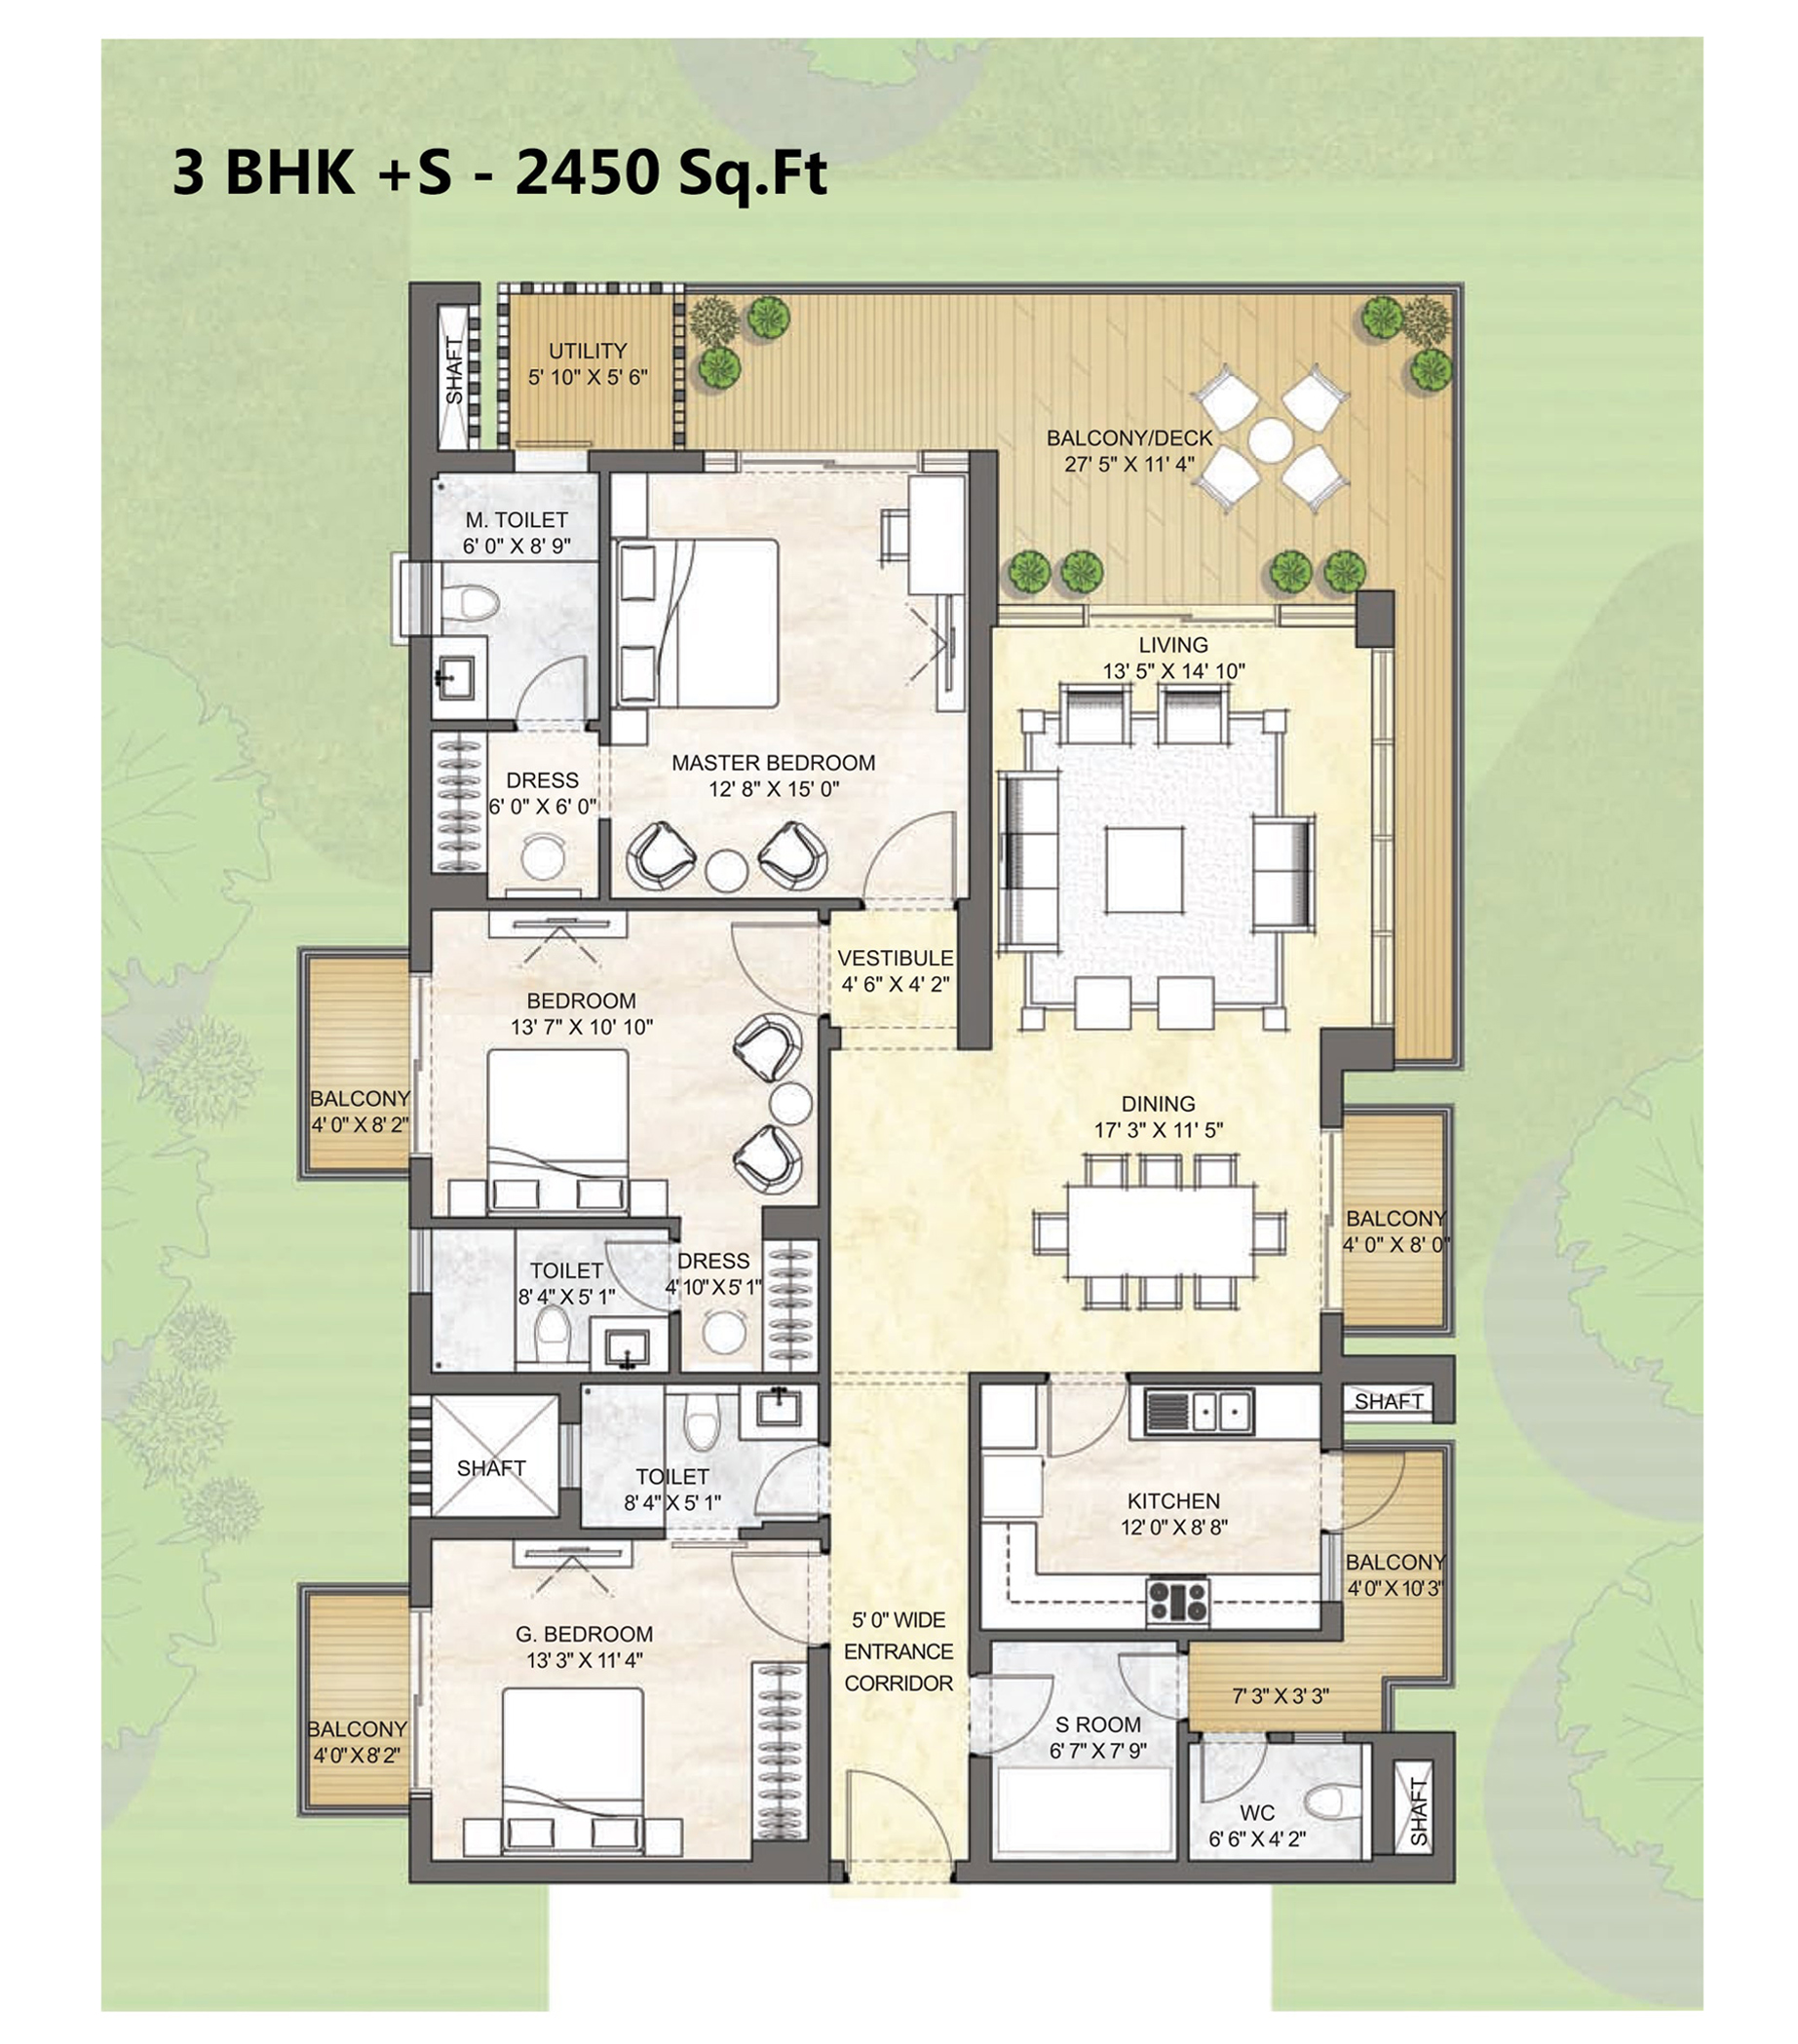 3 BHK +S - 2450 Sq.Ft